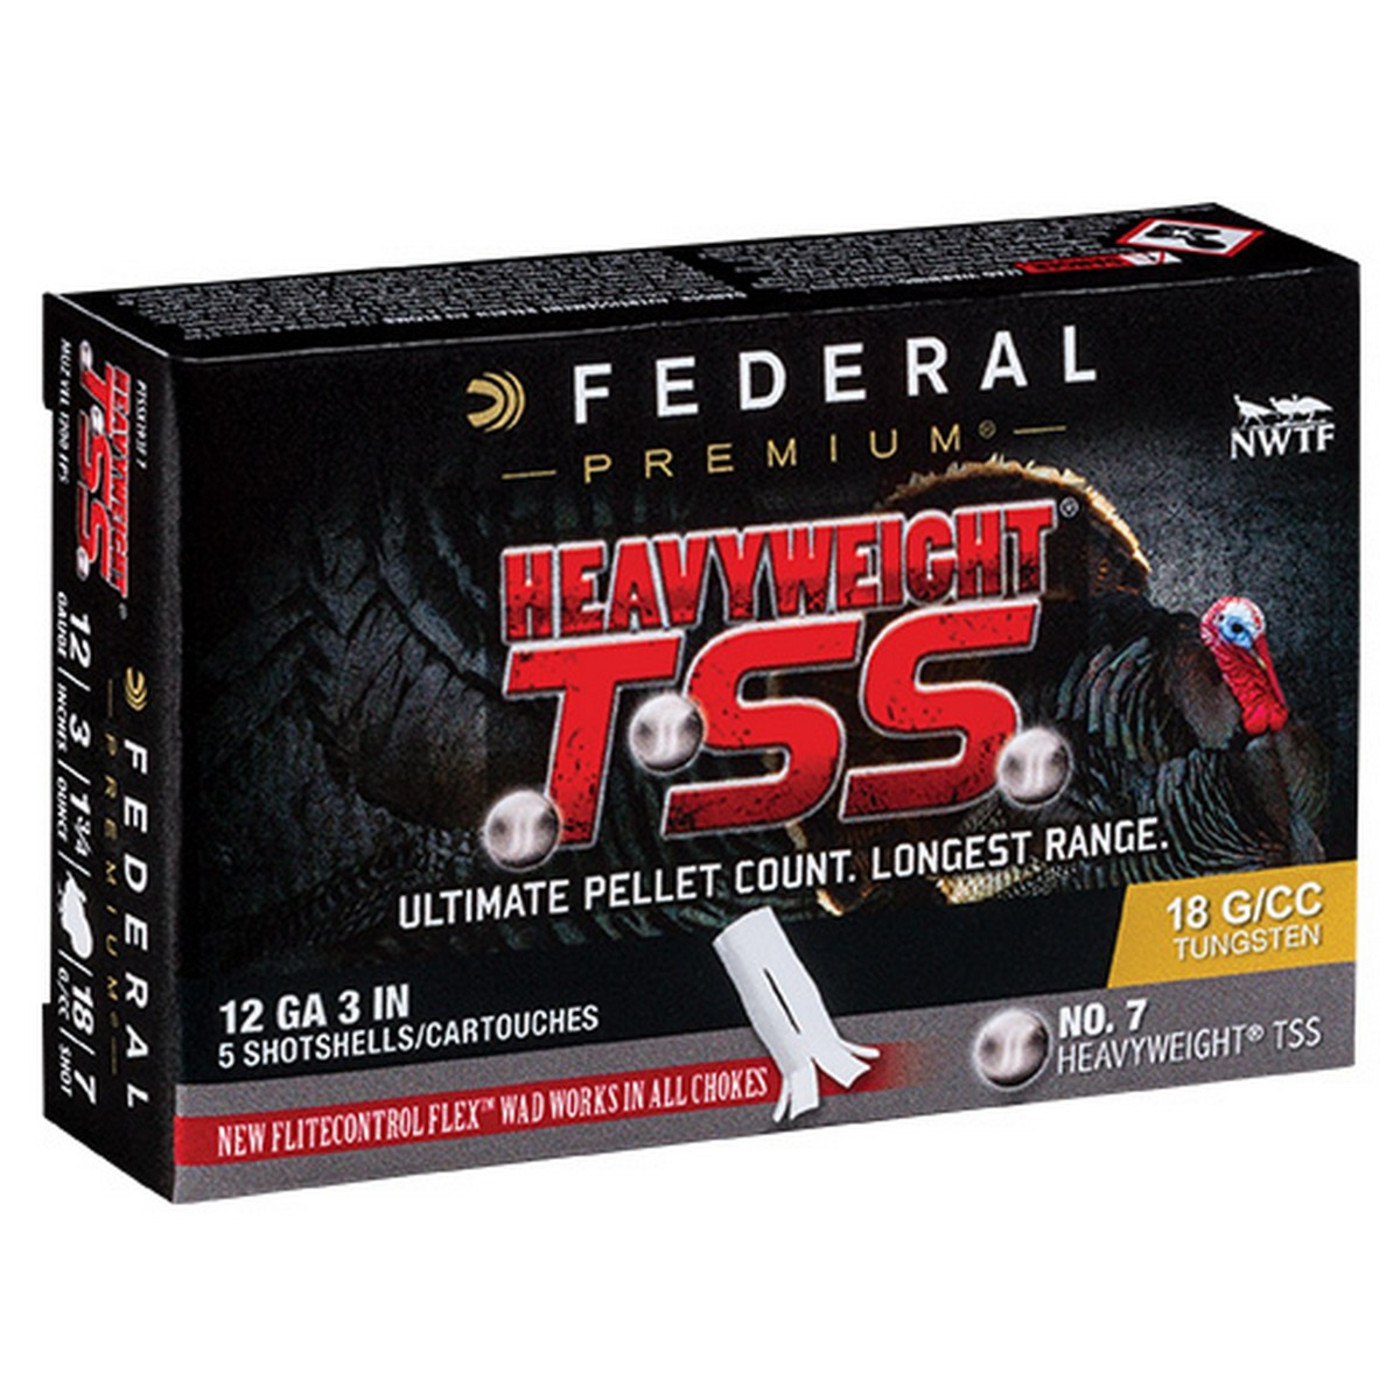 "Federal Heavyweight Turkey TSS 12 Ga 3 1/2"" 2-1/4 Oz - Box"